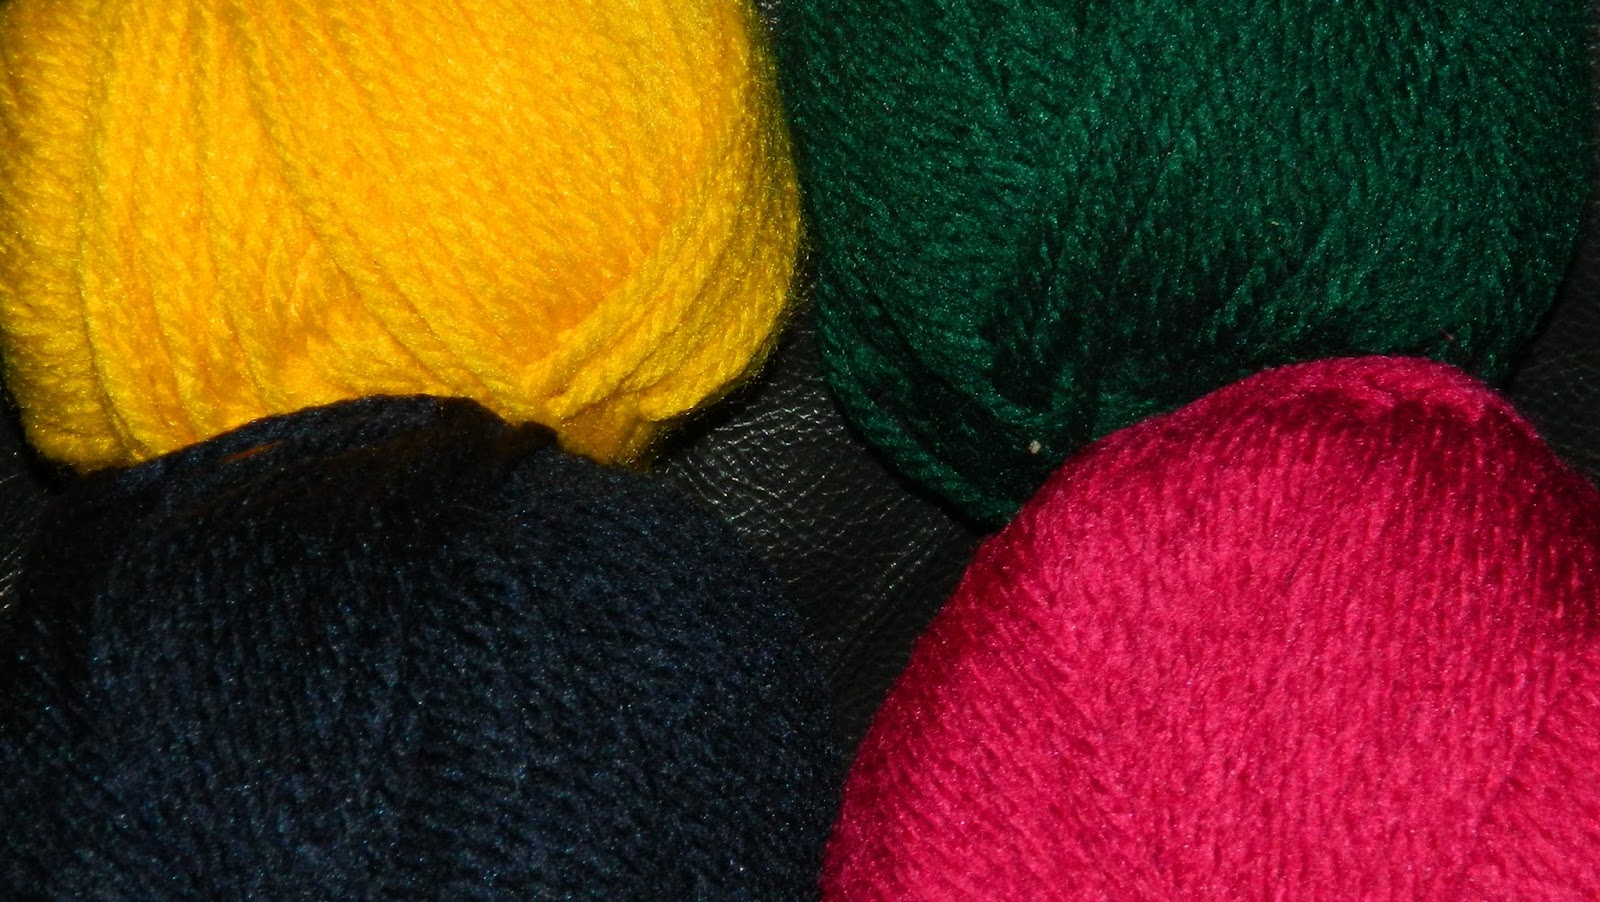 yellow, green blue, red yarn